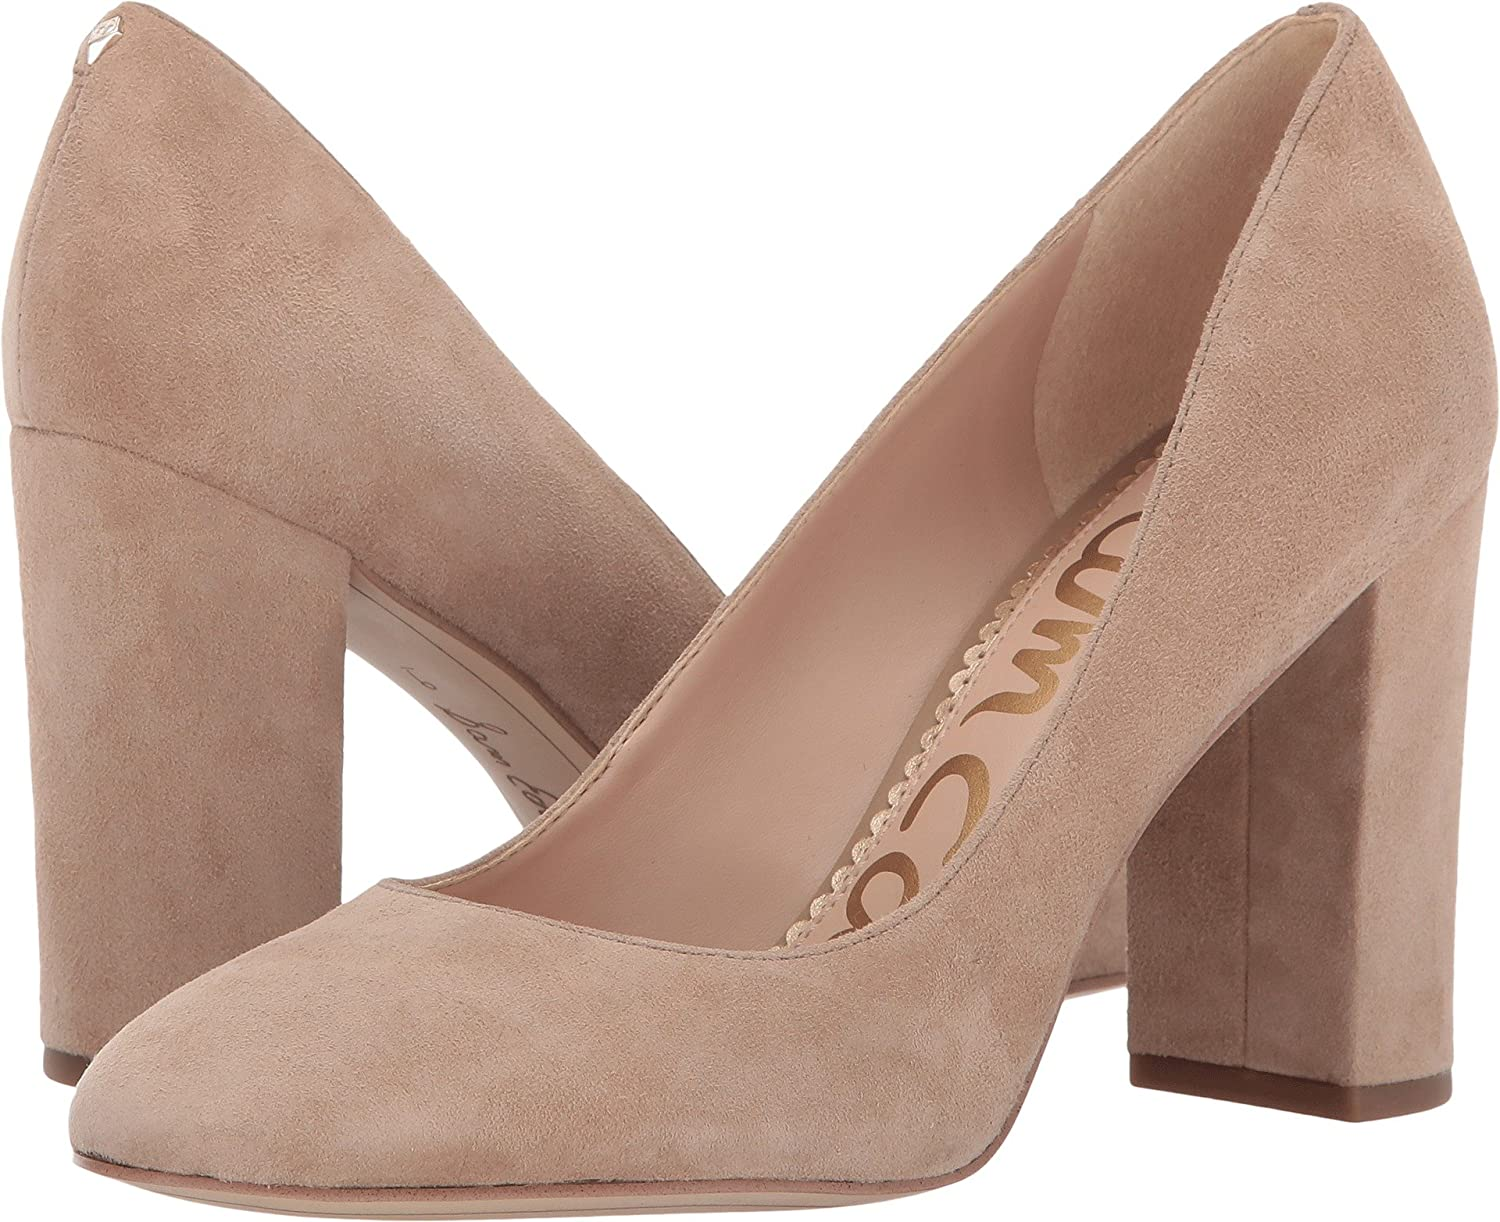 Oatmeal Kid Suede Leather Sam Edelman Women's Stillson Pumps